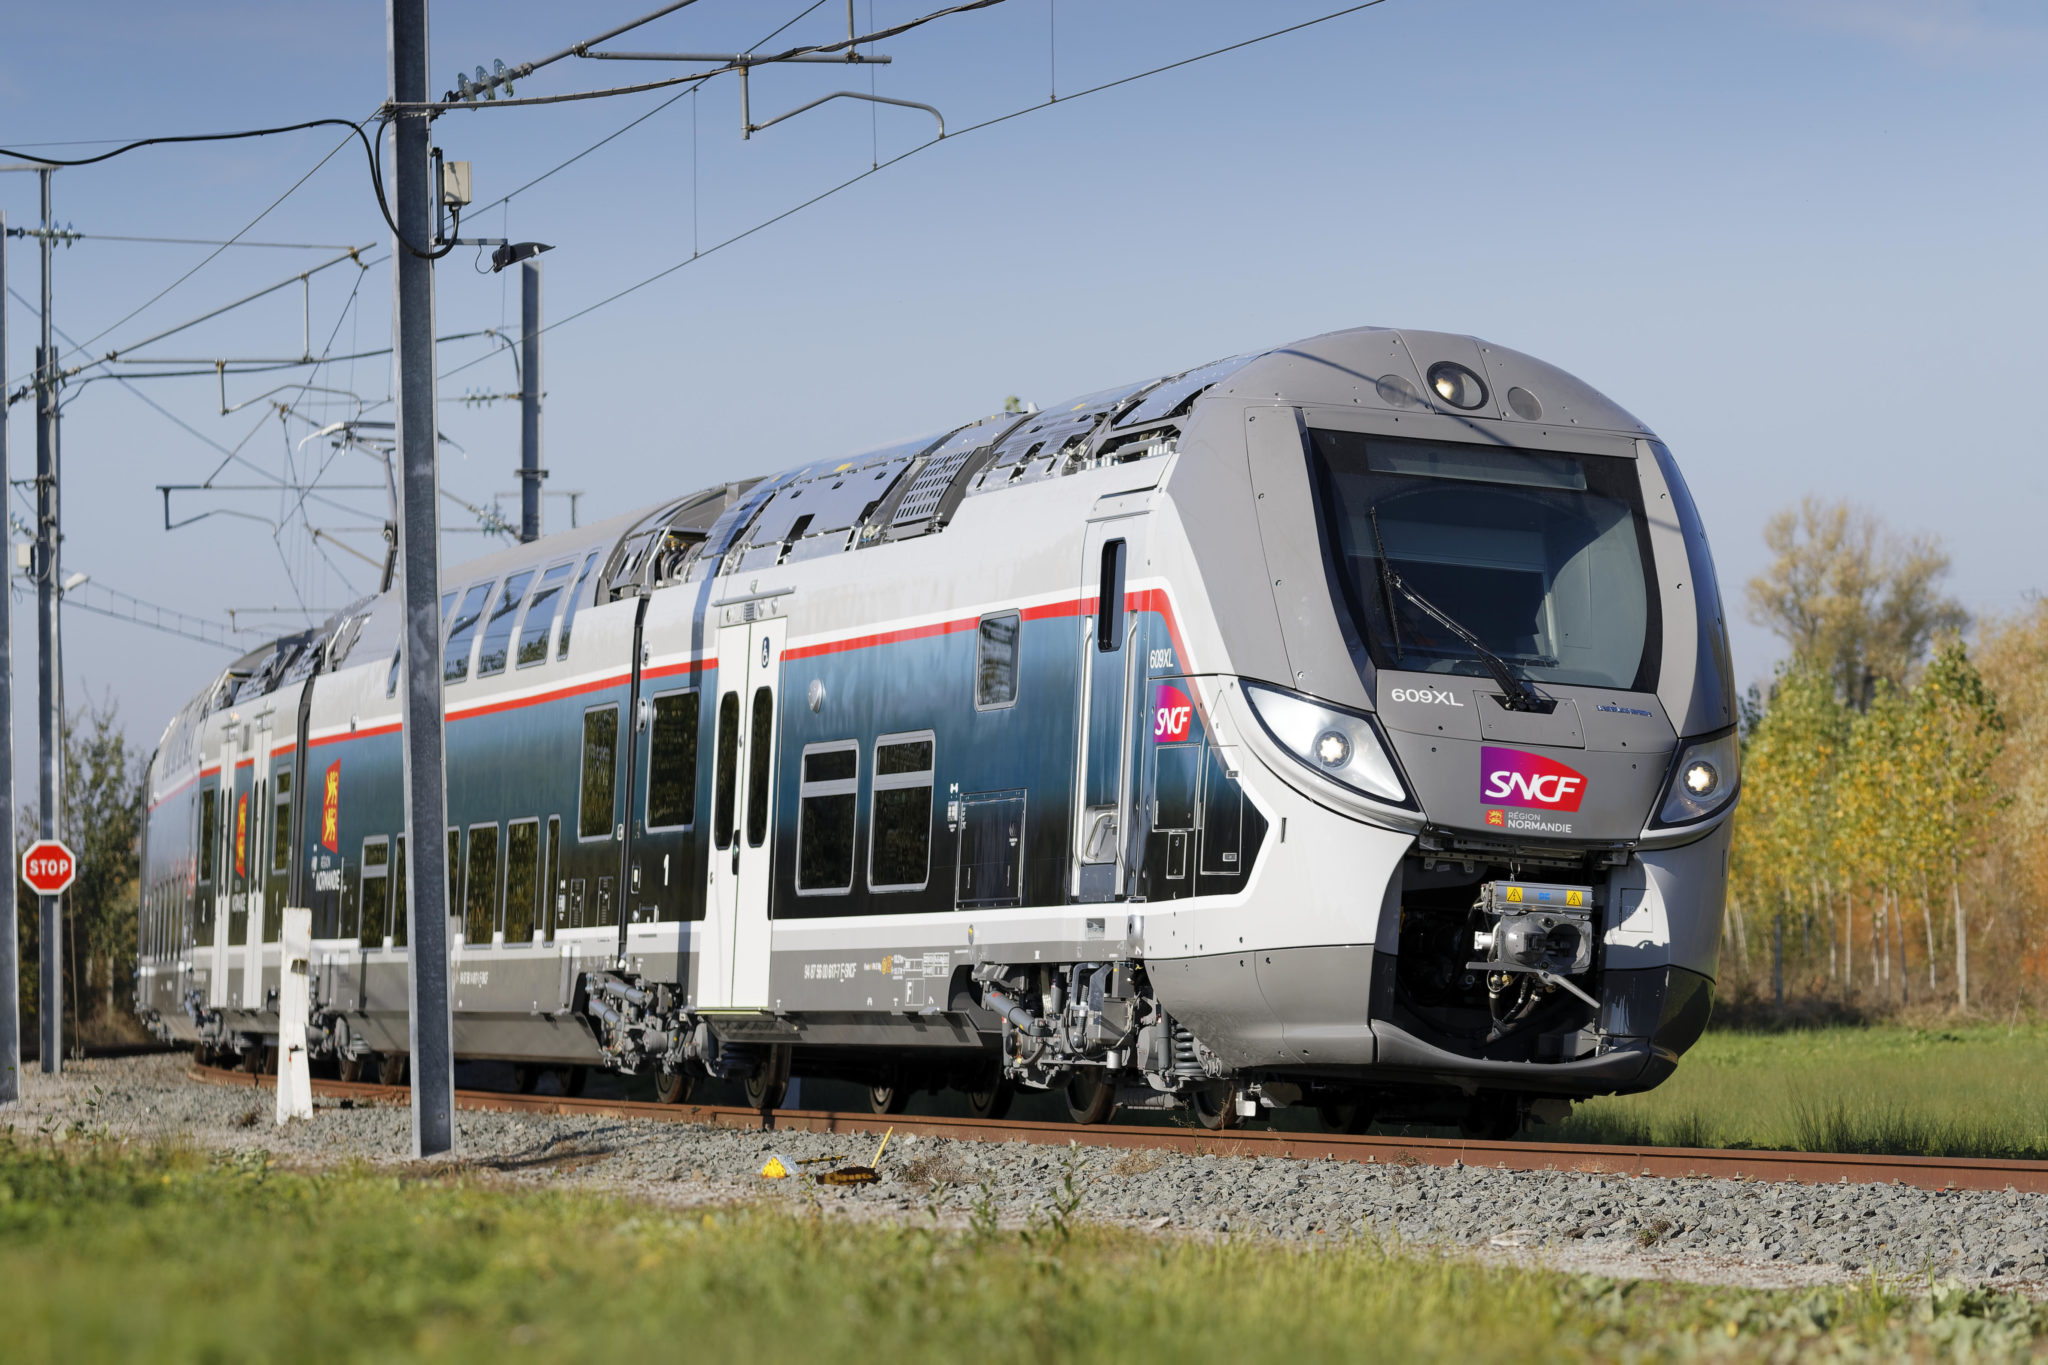 Bombardier OMNEO Premium awarded Guaranteed French Origin status